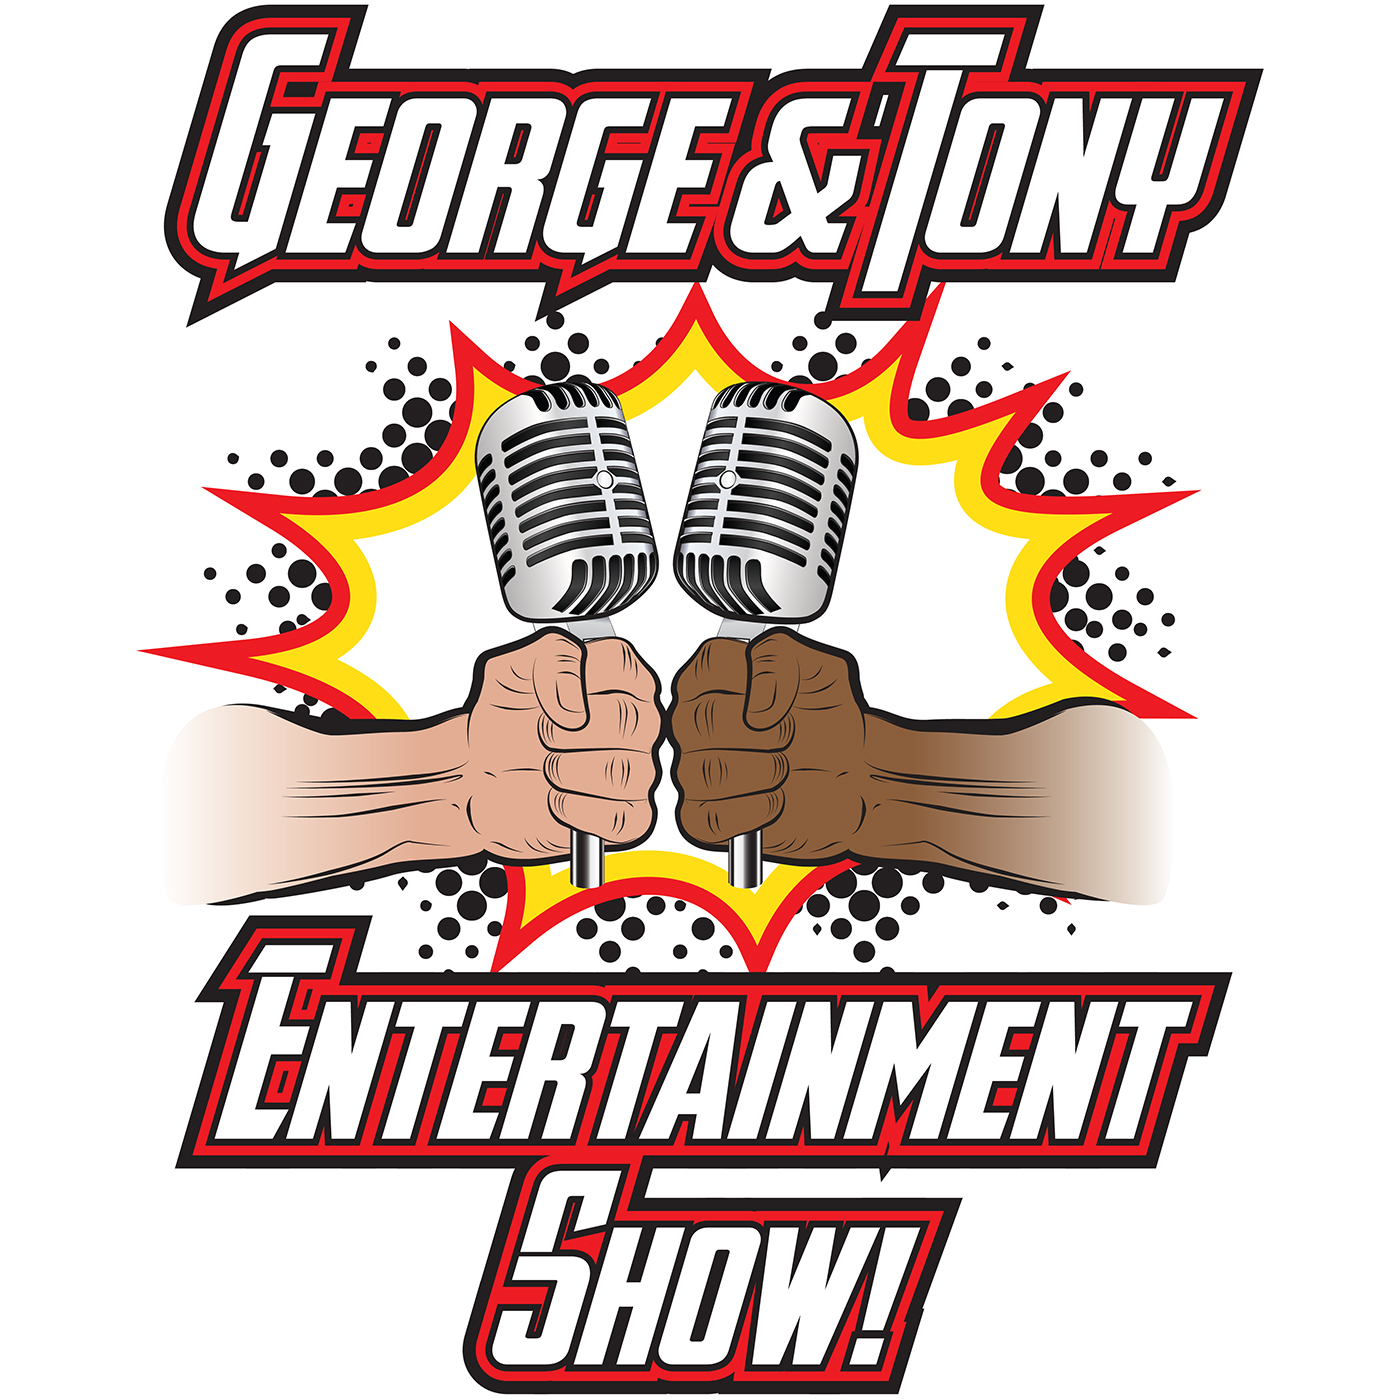 George and Tony Entertainment Show #51